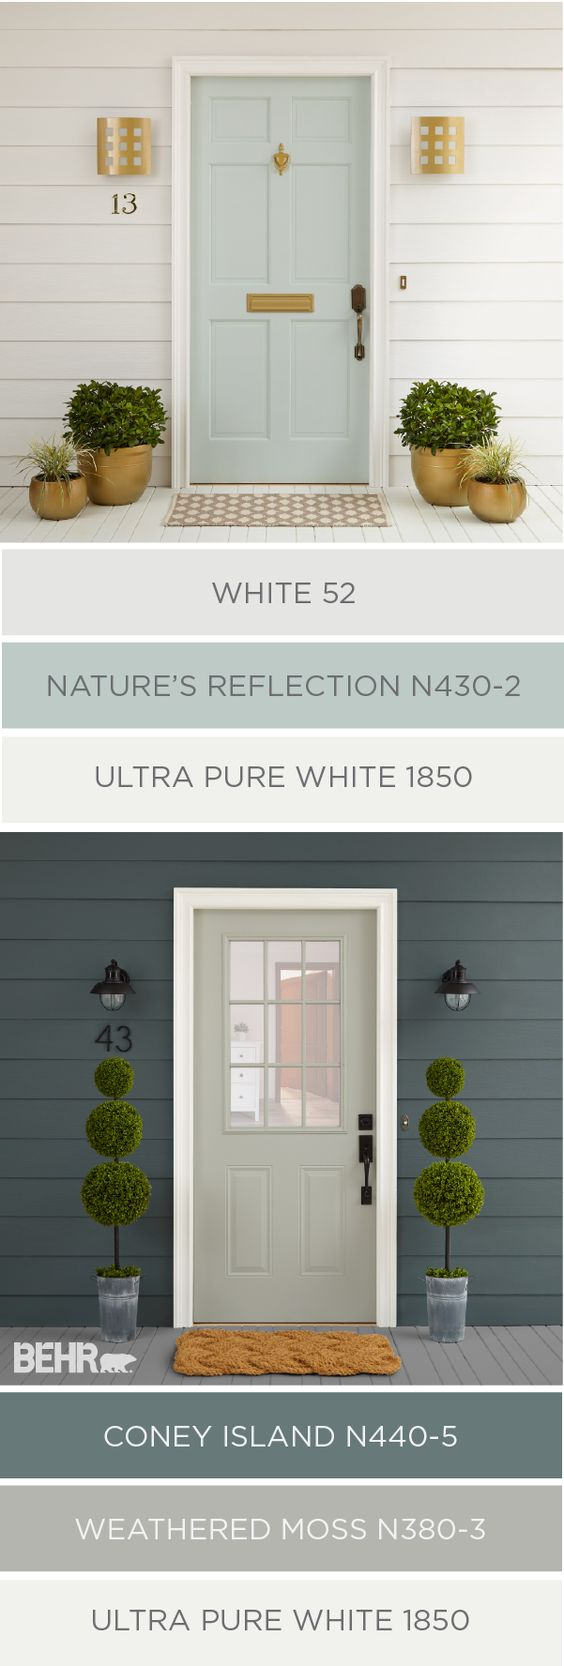 Exterior Paint | Favorite Paint Colors Blog